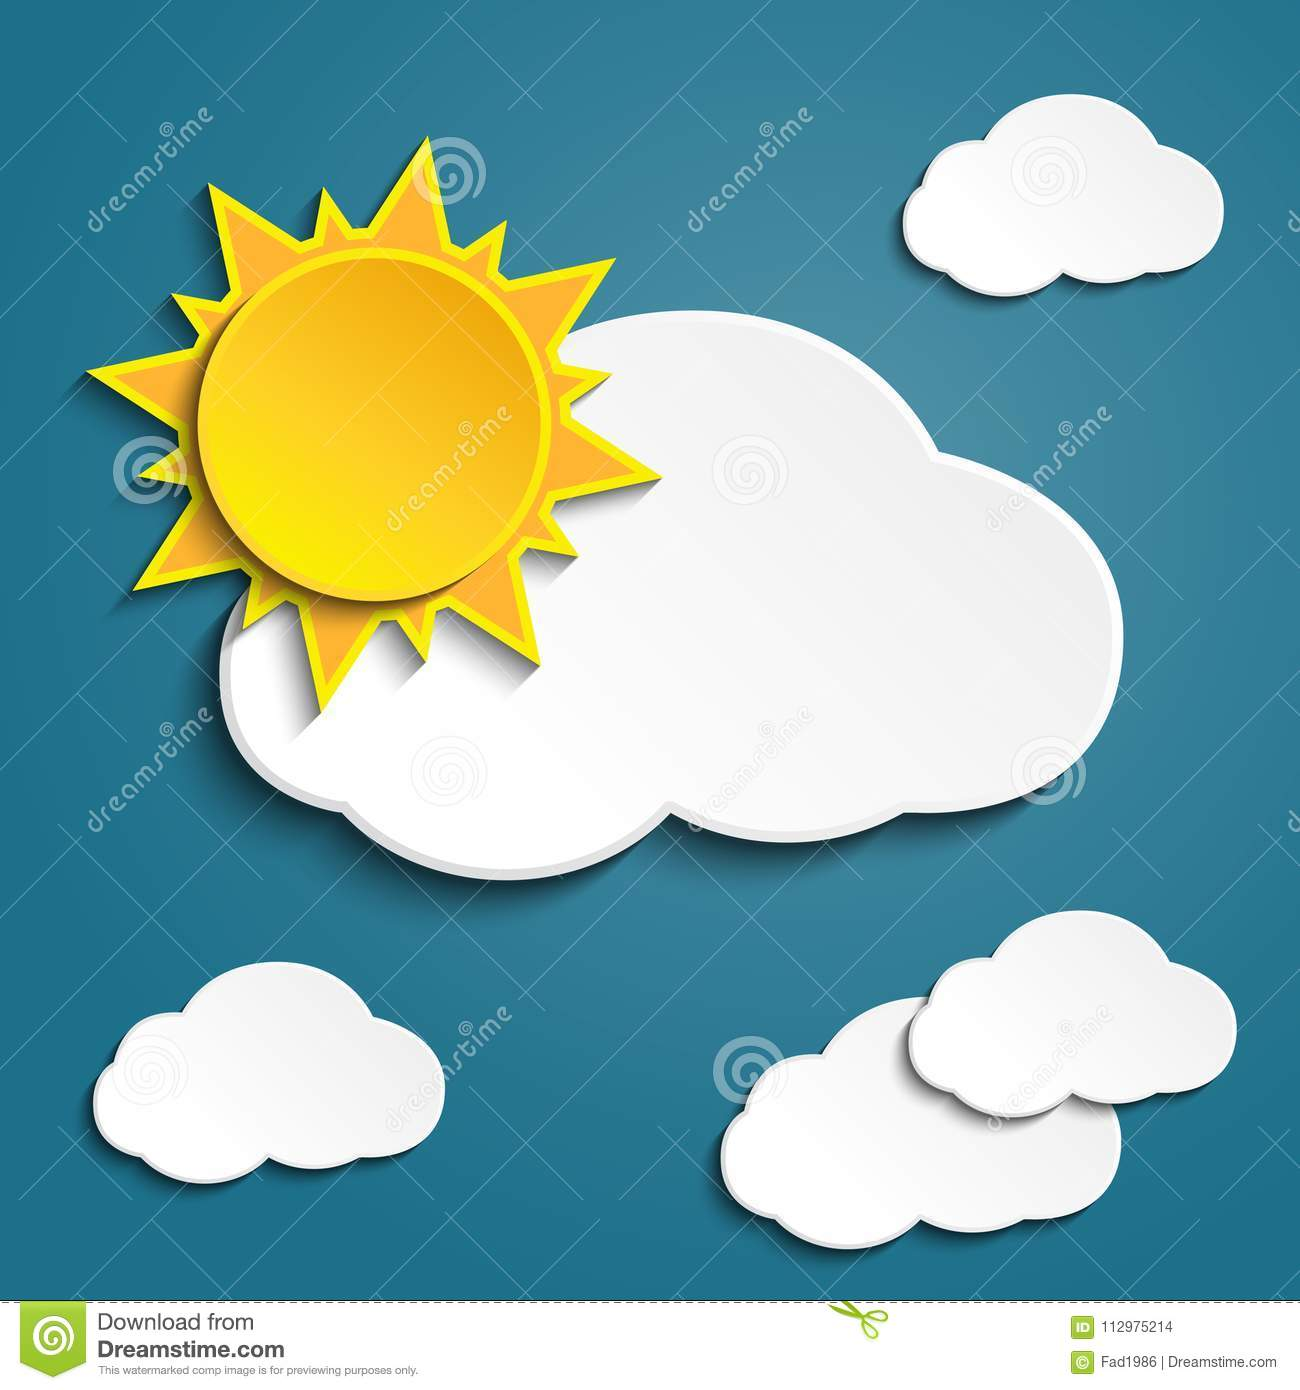 Vector abstract background- white paper clouds and sun